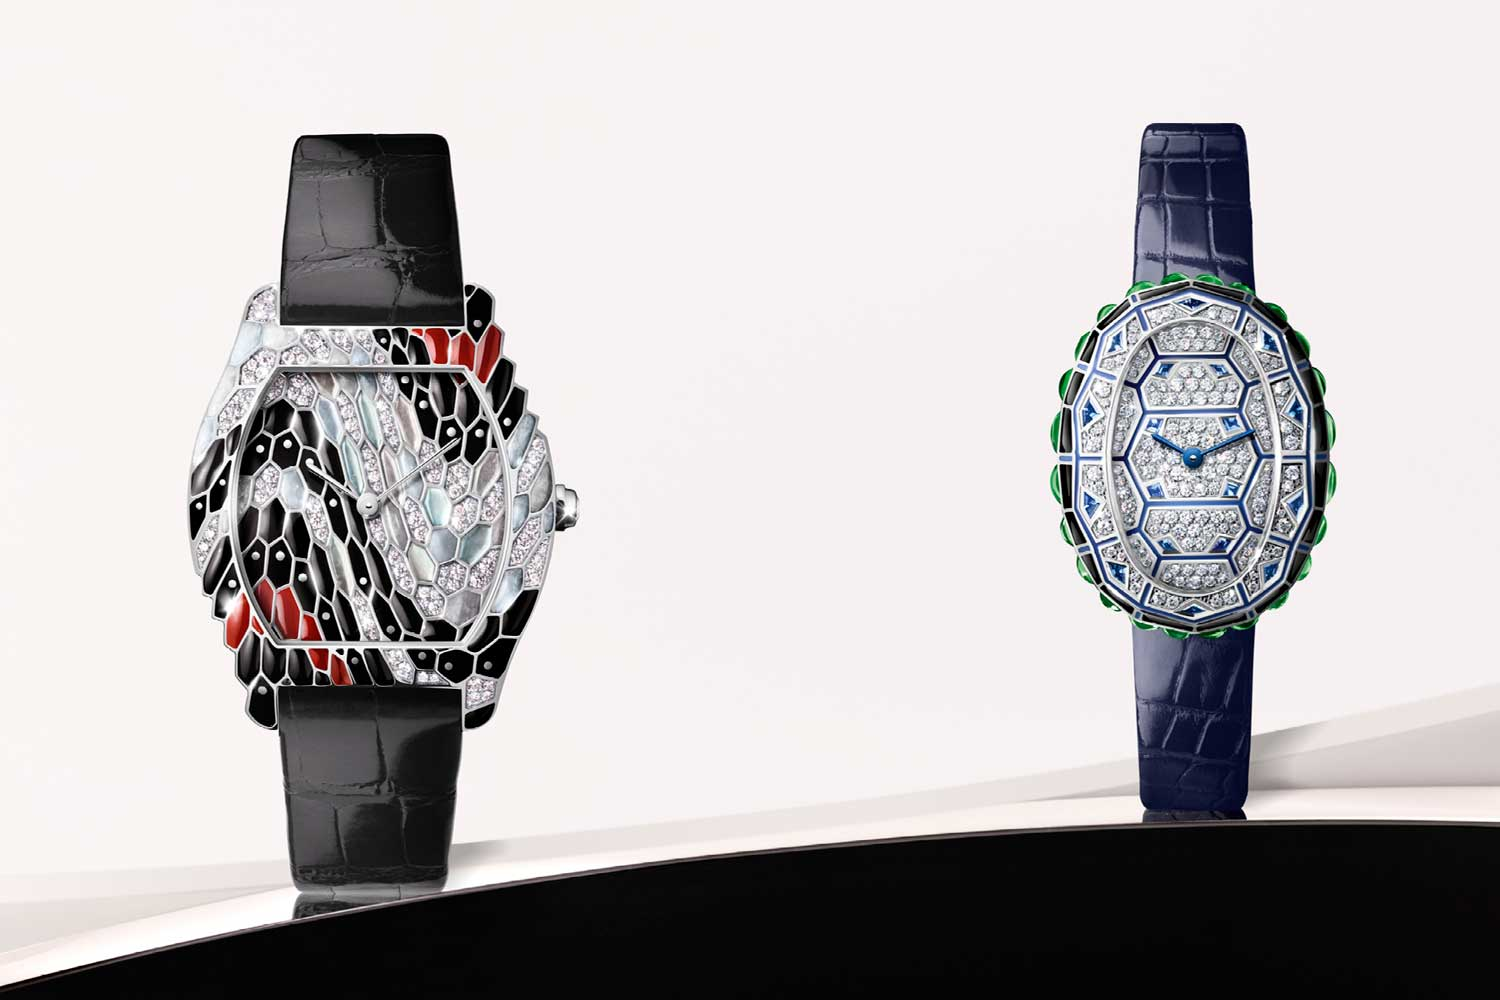 The new Cartier Libre watches